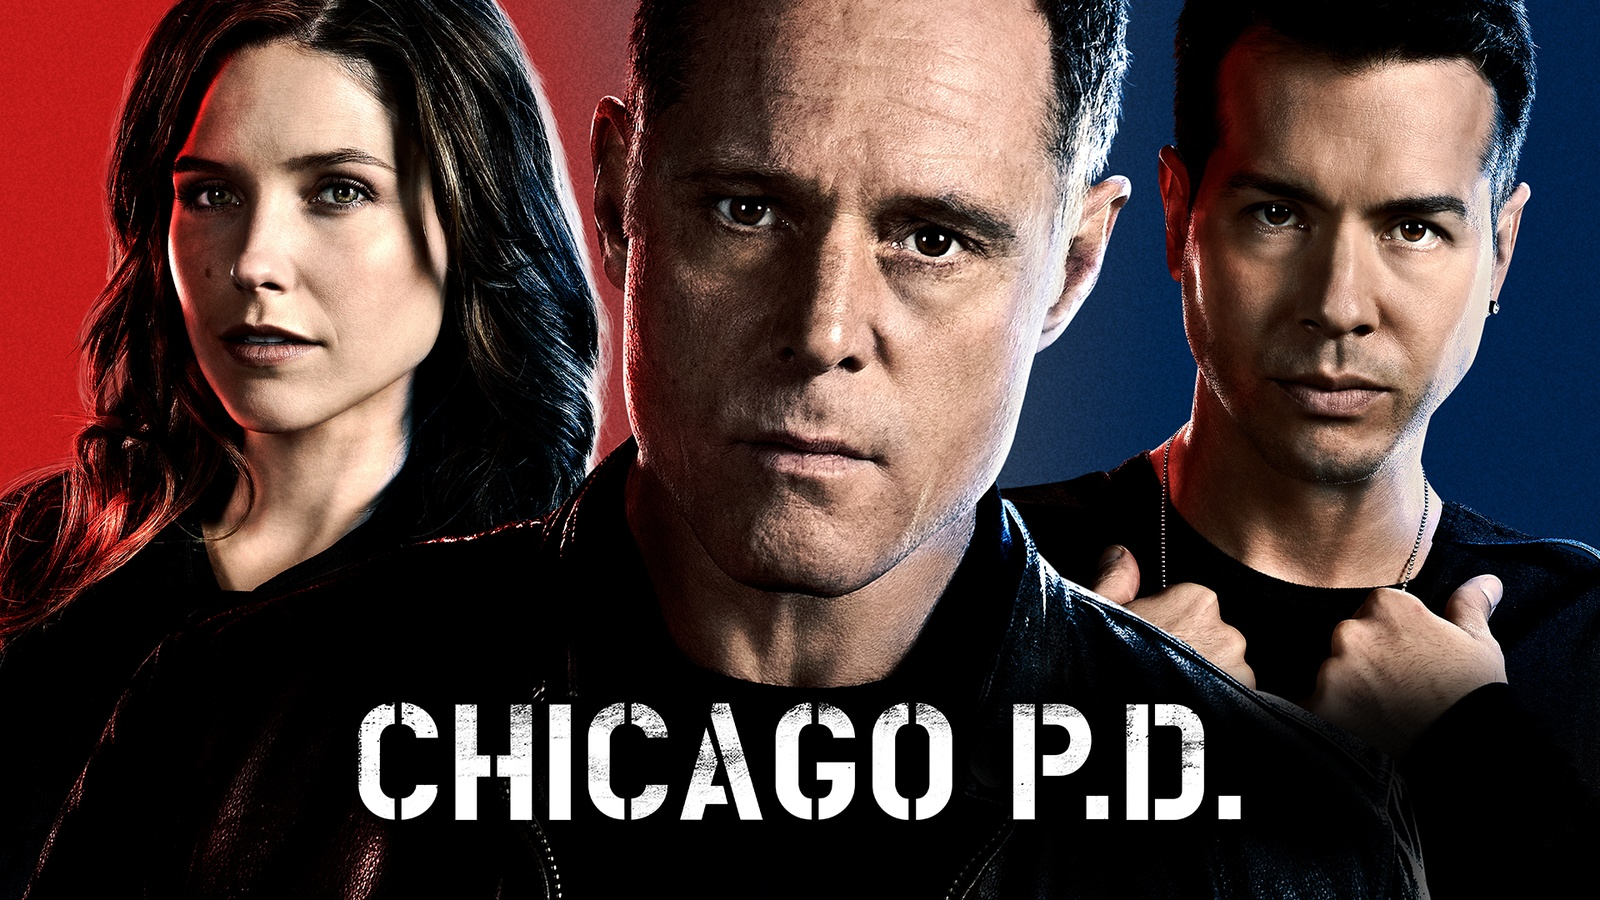 Полиция Чикаго/Chicago P.D. background